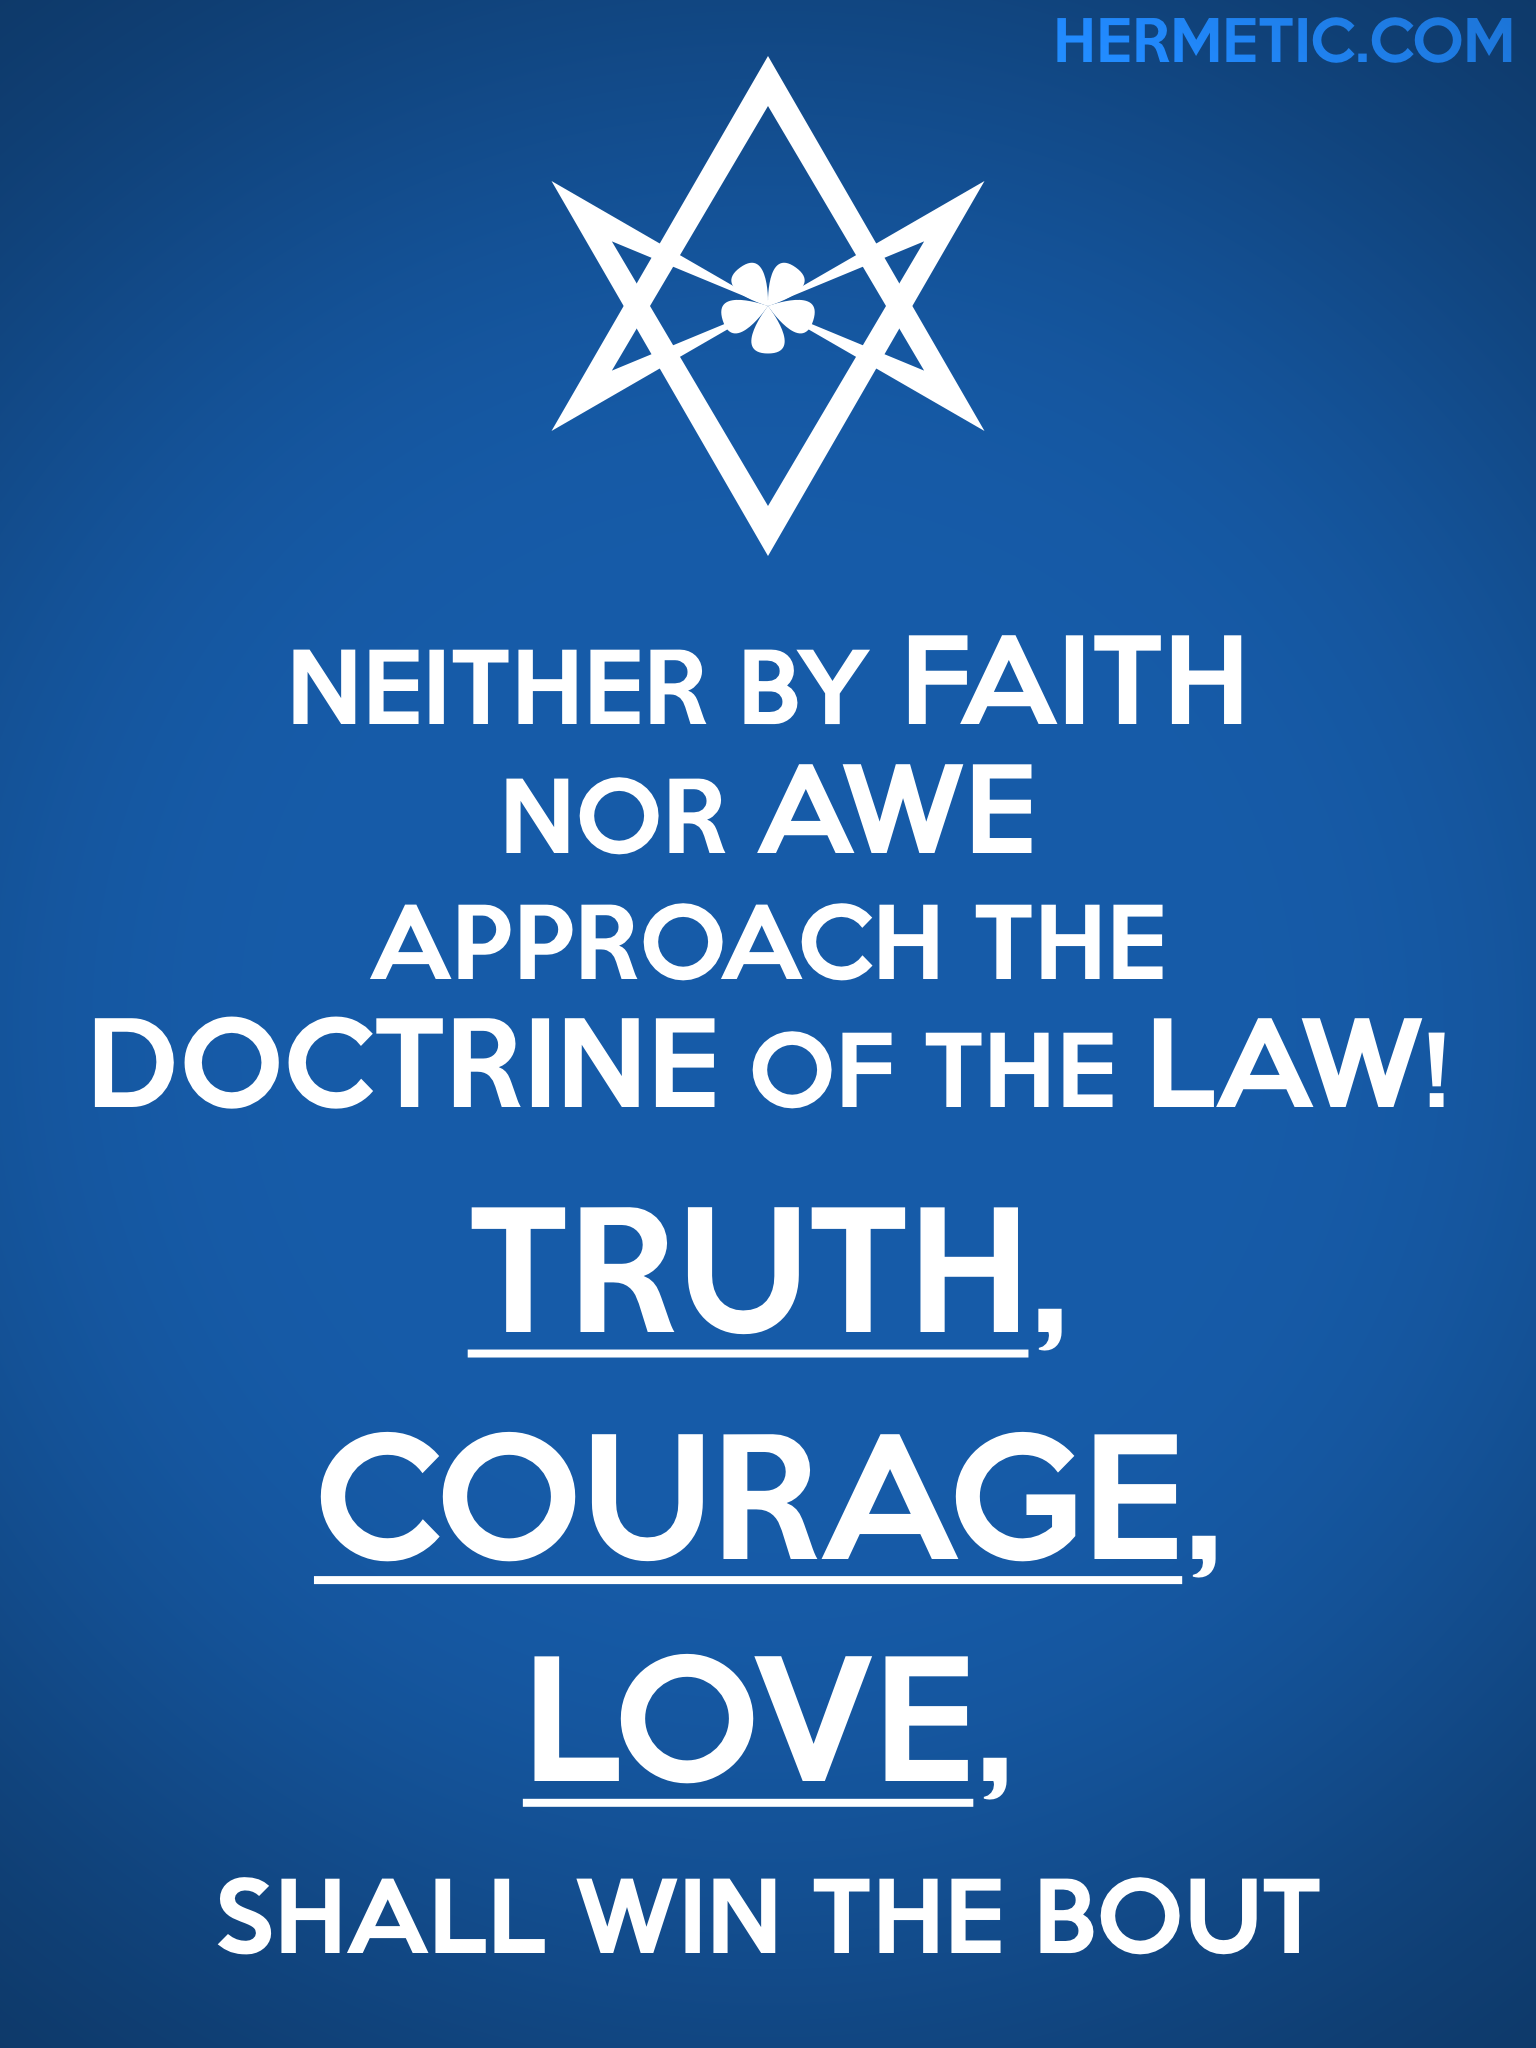 Unicursal TRUTH COURAGE LOVE Propaganda Poster from Hermetic Library Office of the Ministry of Information